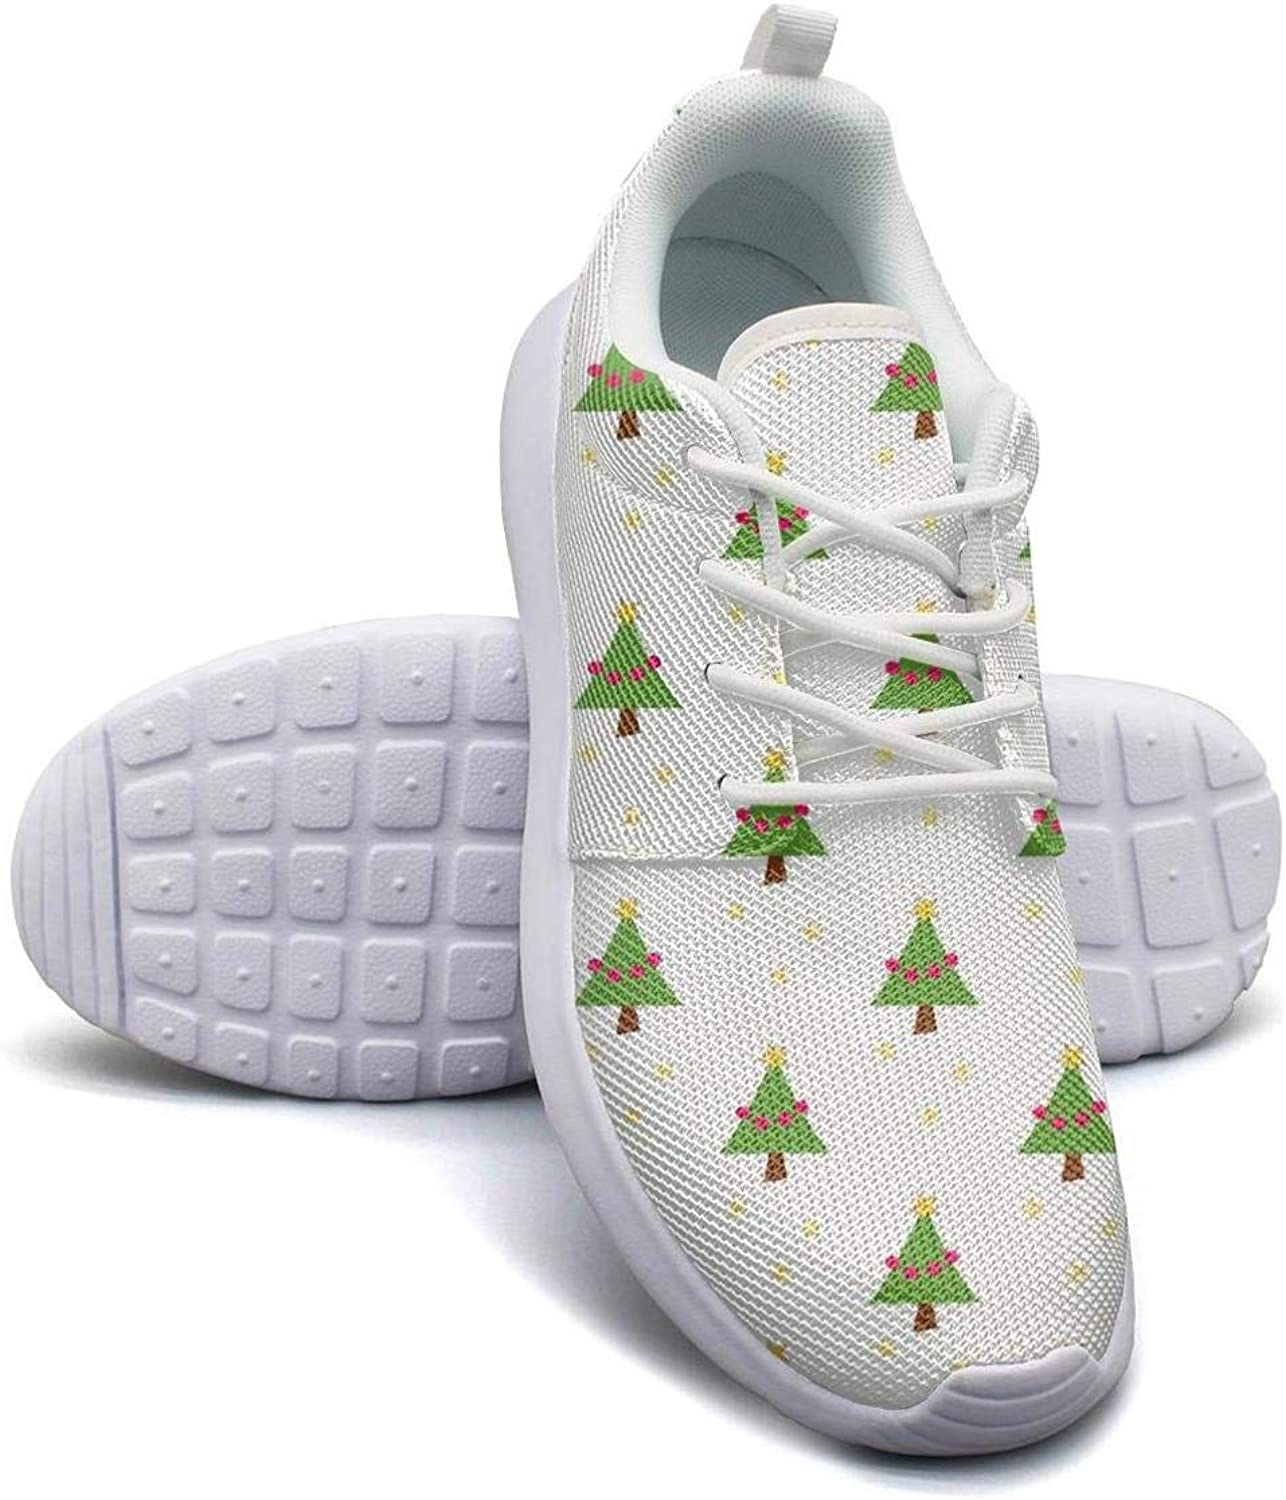 Gjsonmv Christmas Tree Pattern mesh Lightweight shoes for Women Fashion Sports Basketball Sneakers shoes